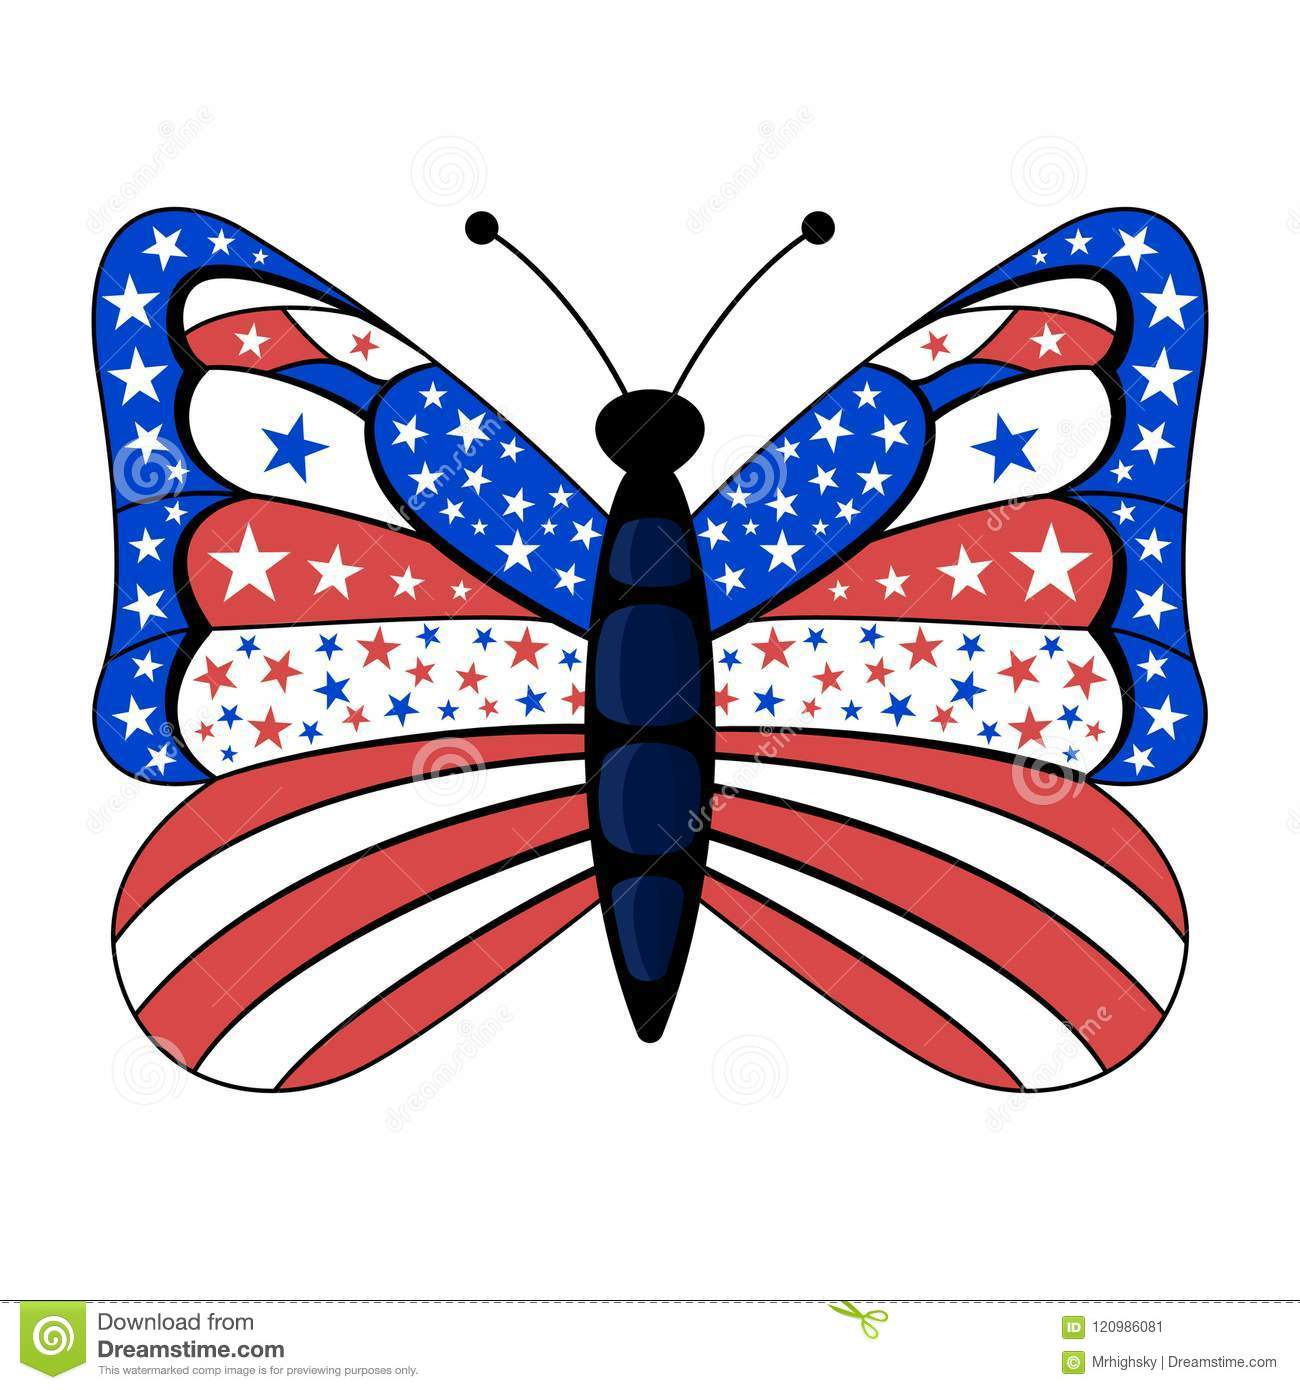 71421658369 Patriotic american flag colors butterfly stock illustration jpg 1300x1390 American  flag butterfly